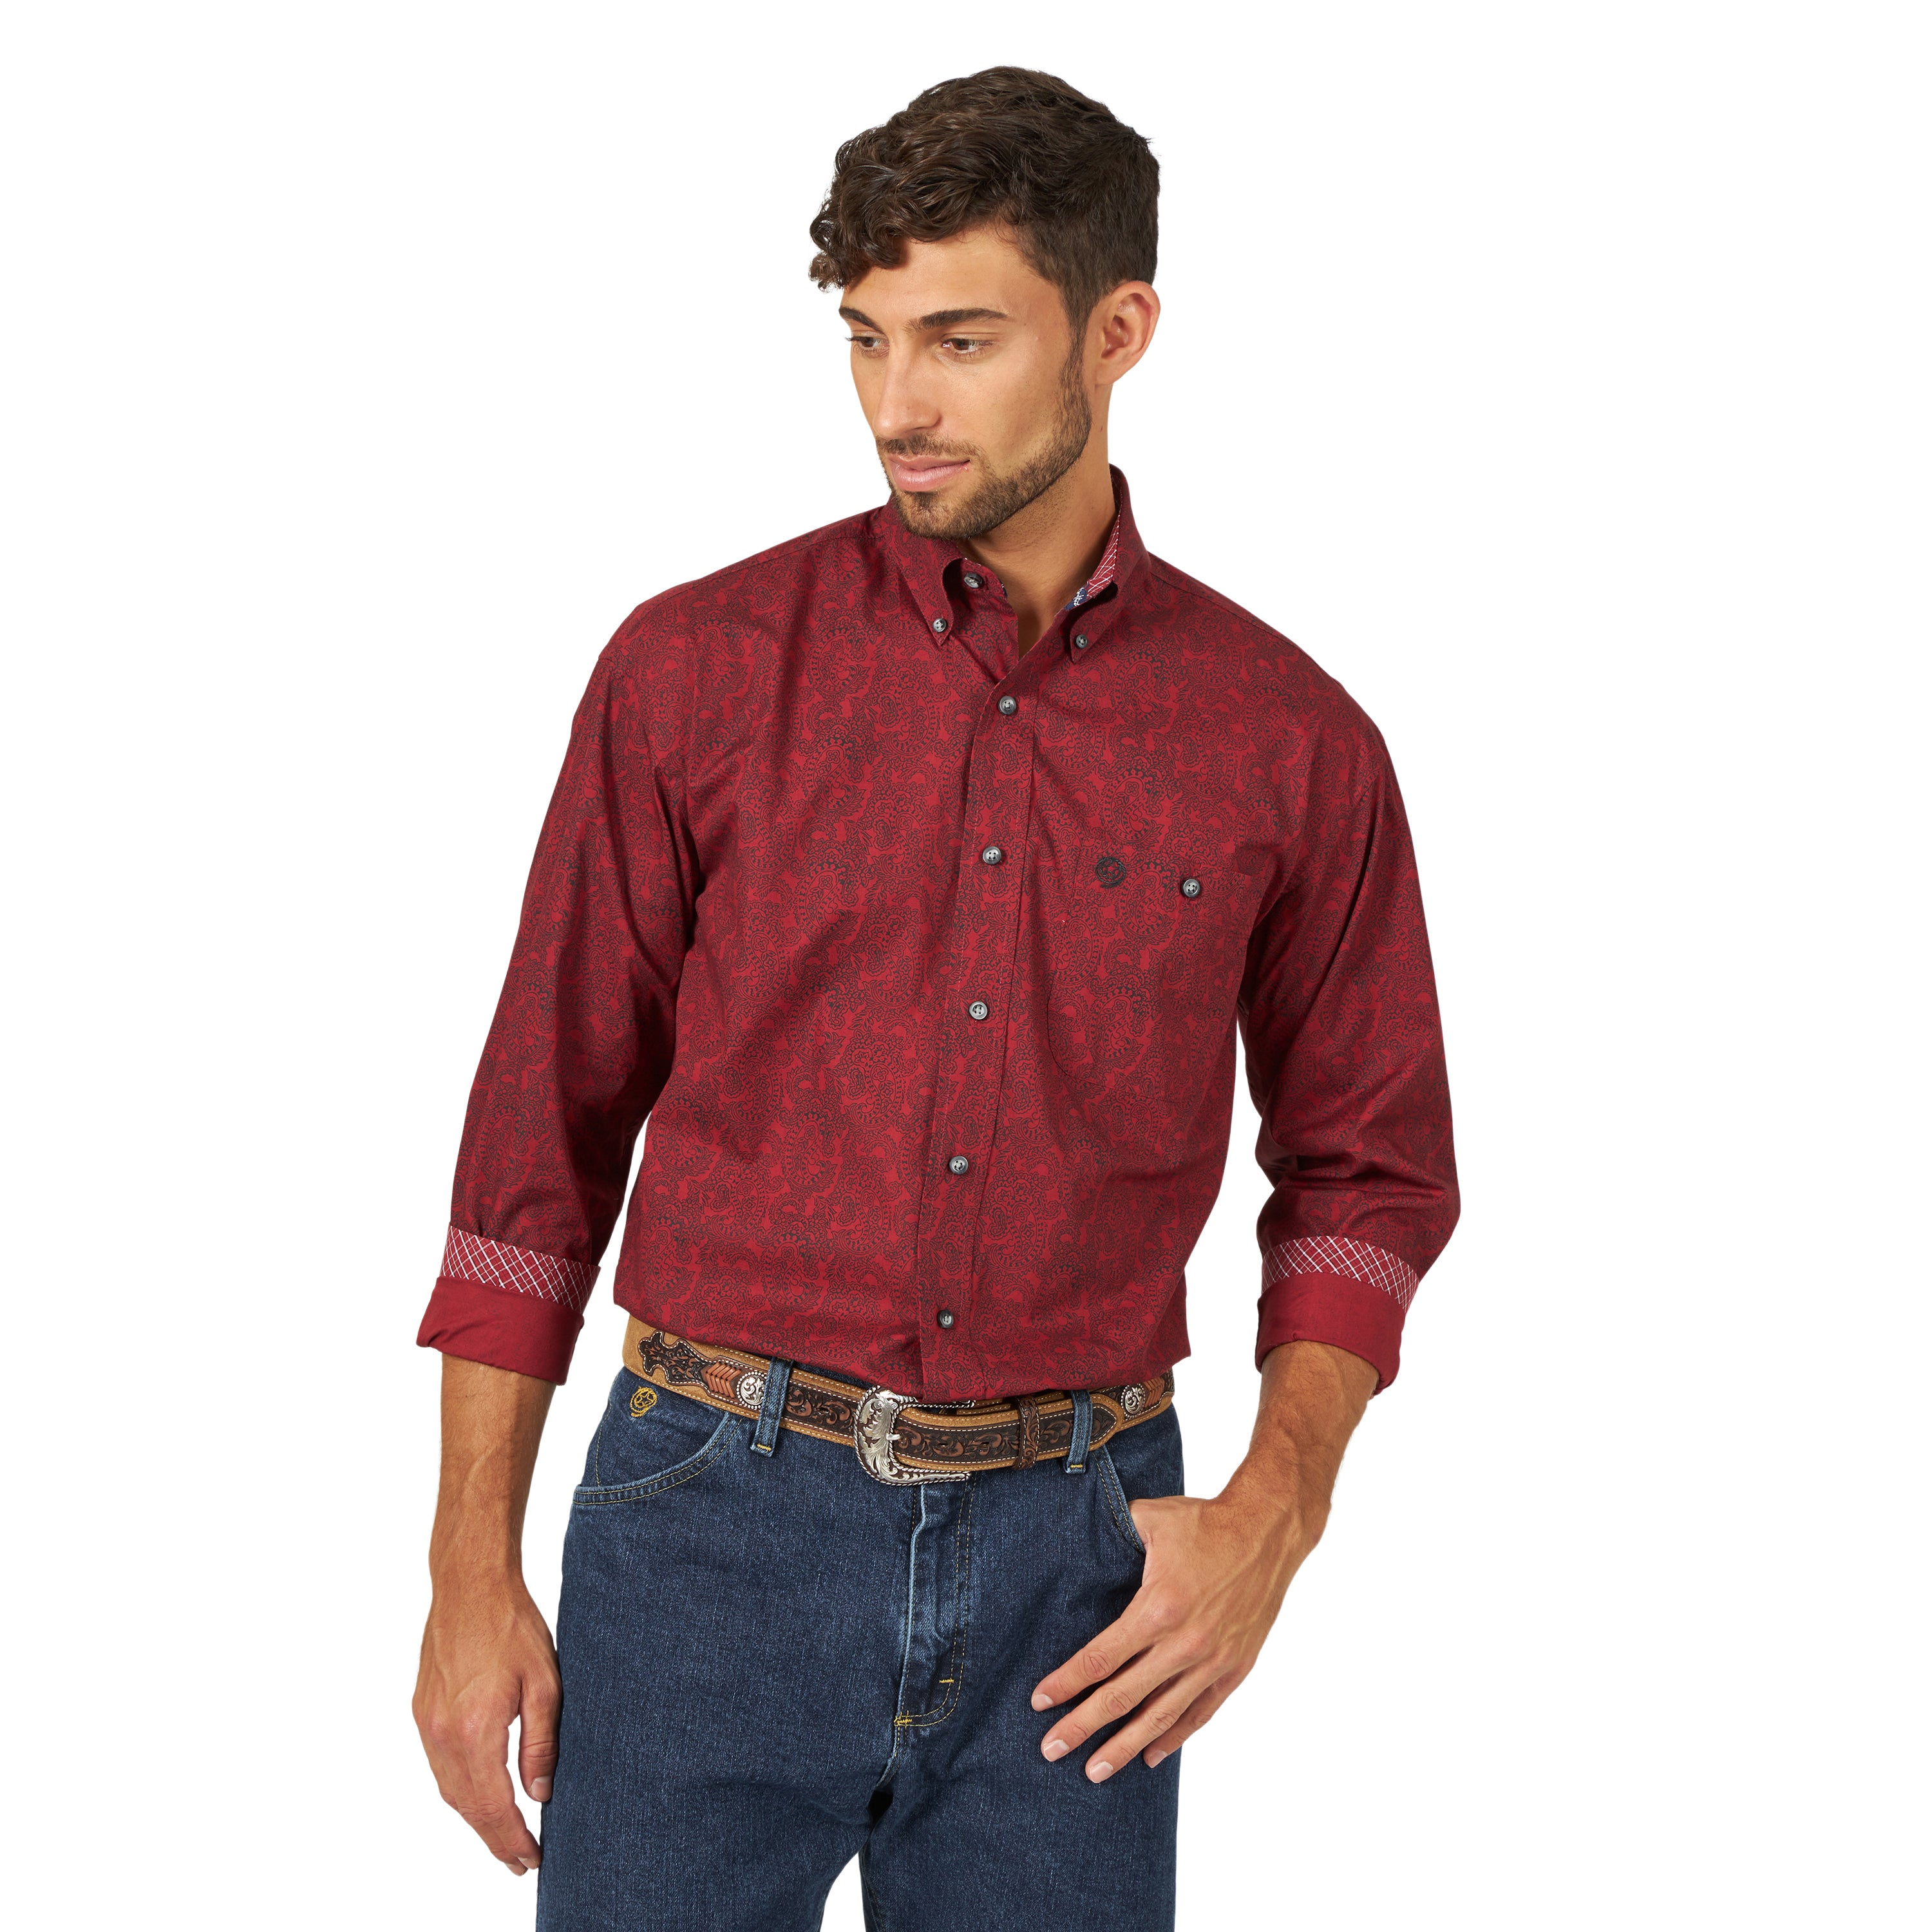 Men's Wrangler George Strait Button Down Shirt #MGSR721X (Big and Tall)